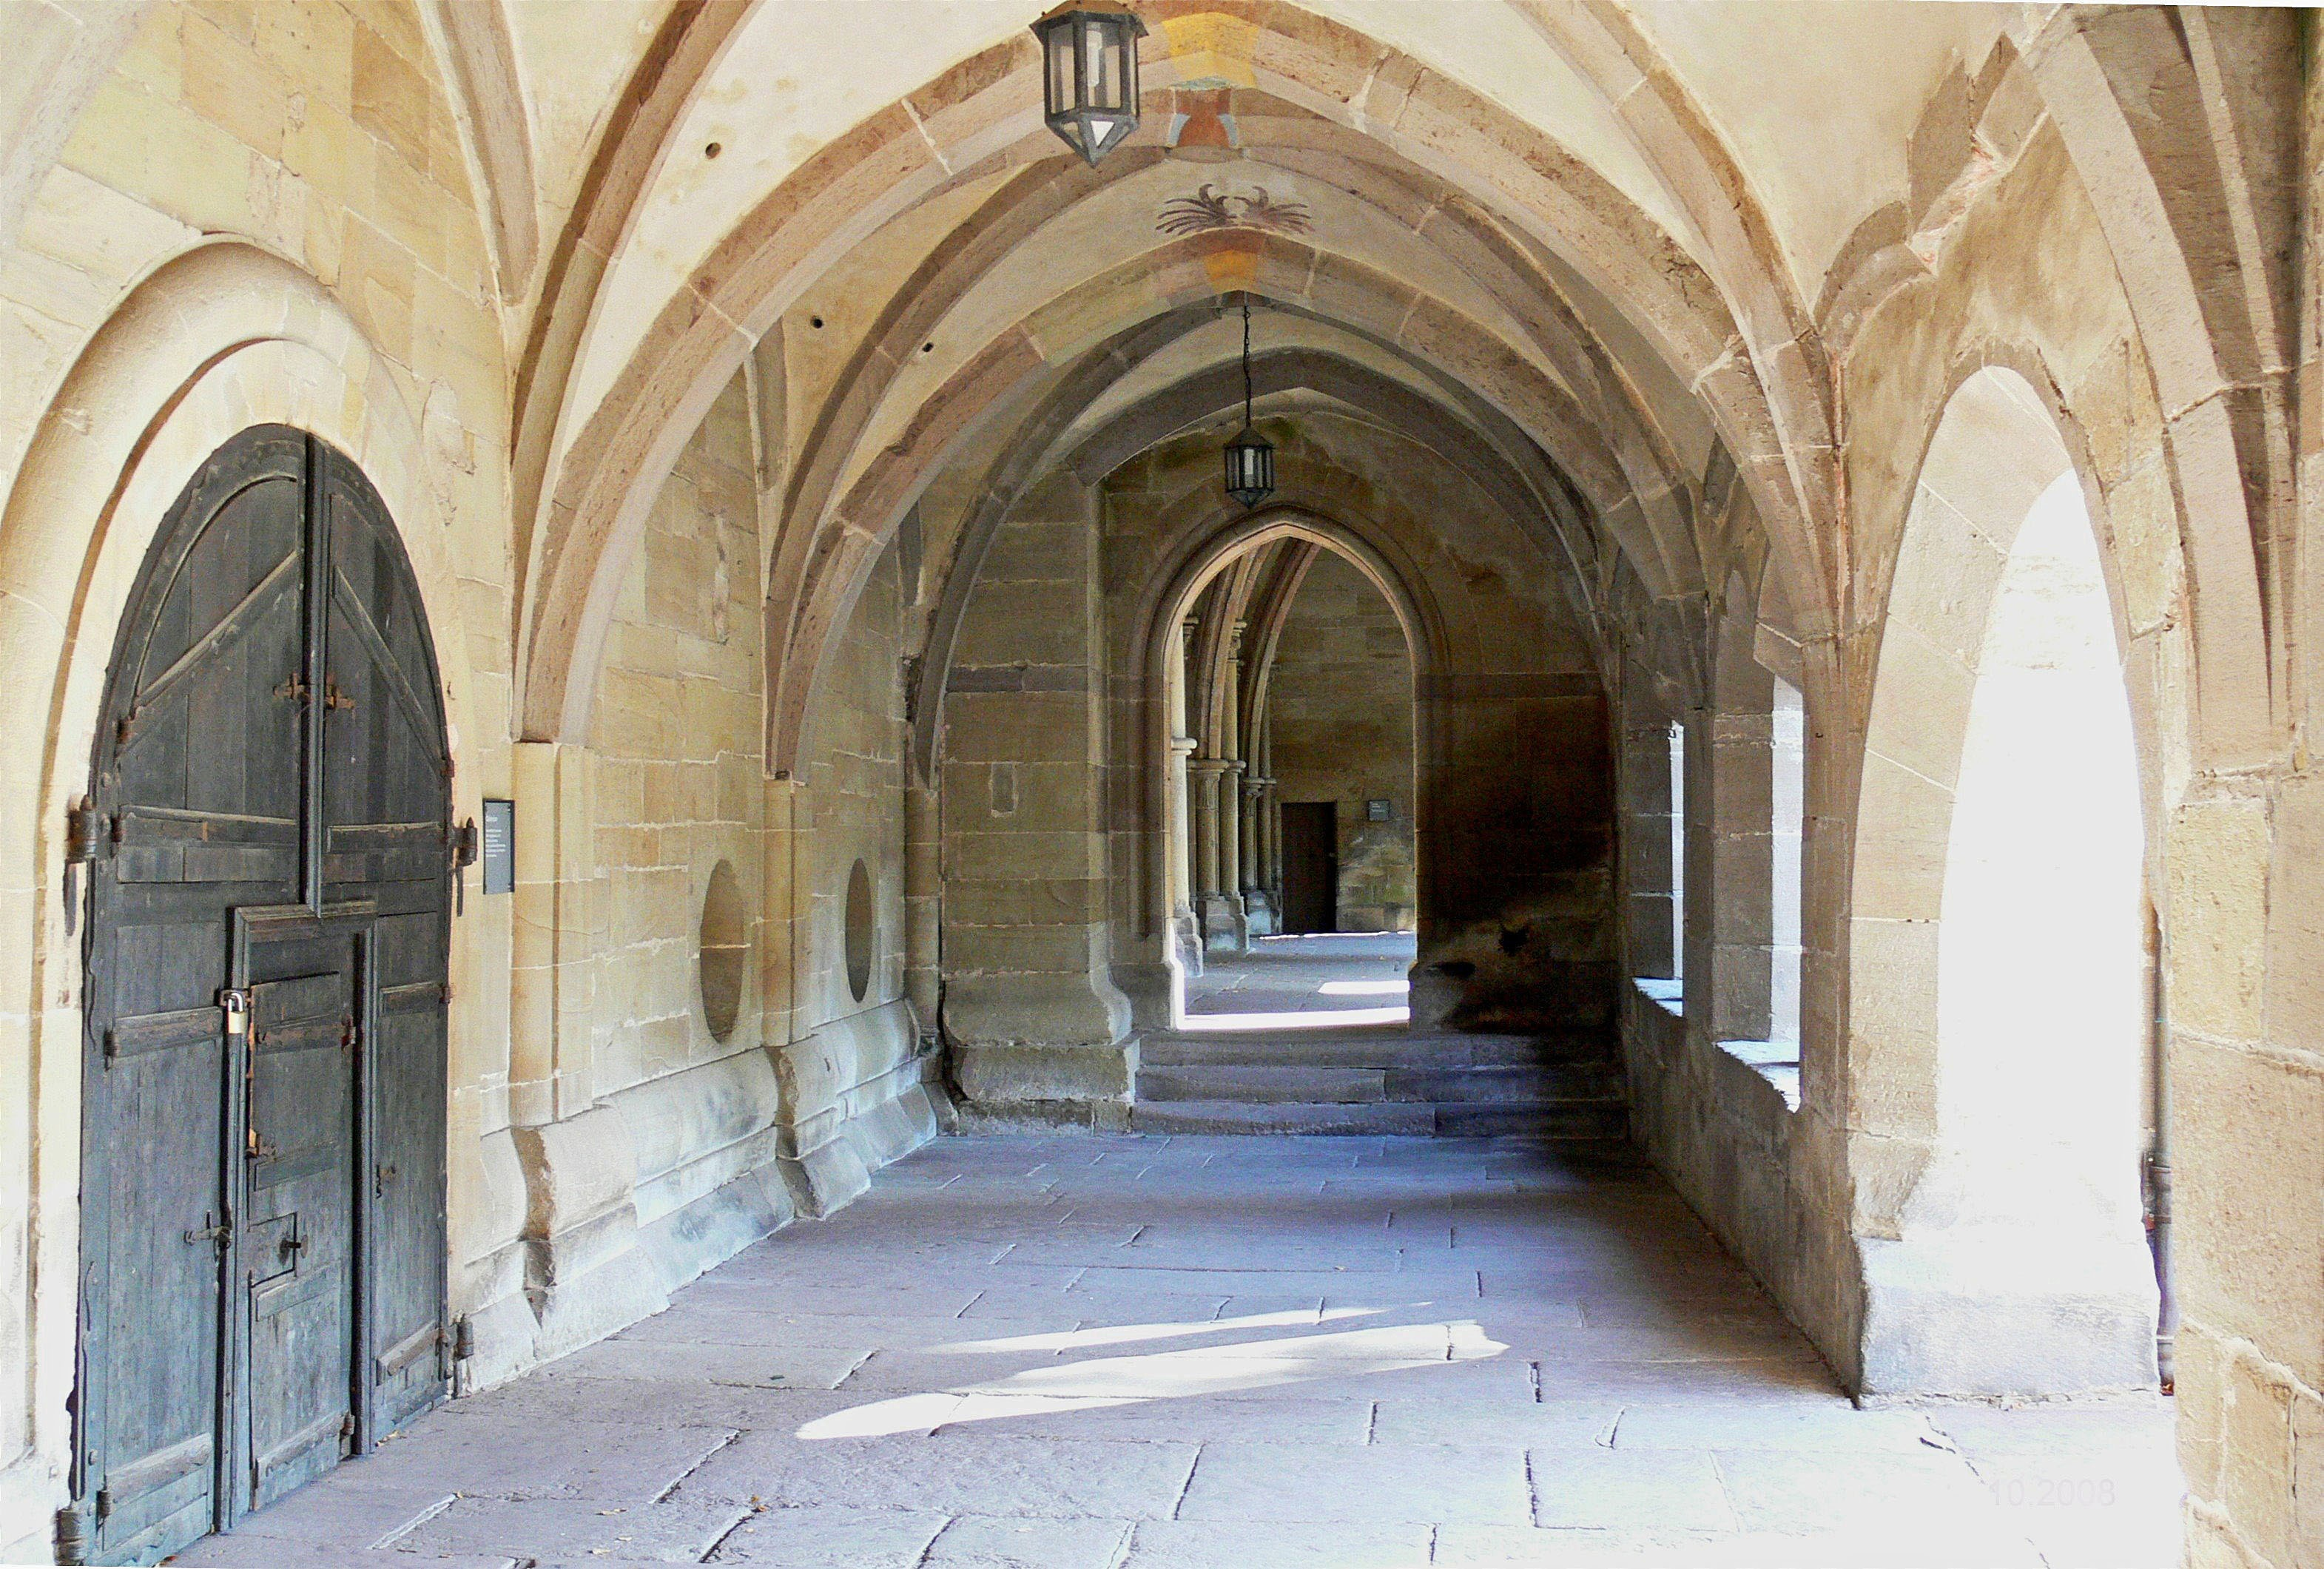 Free Images : building, arch, cathedral, chapel, place of worship ...